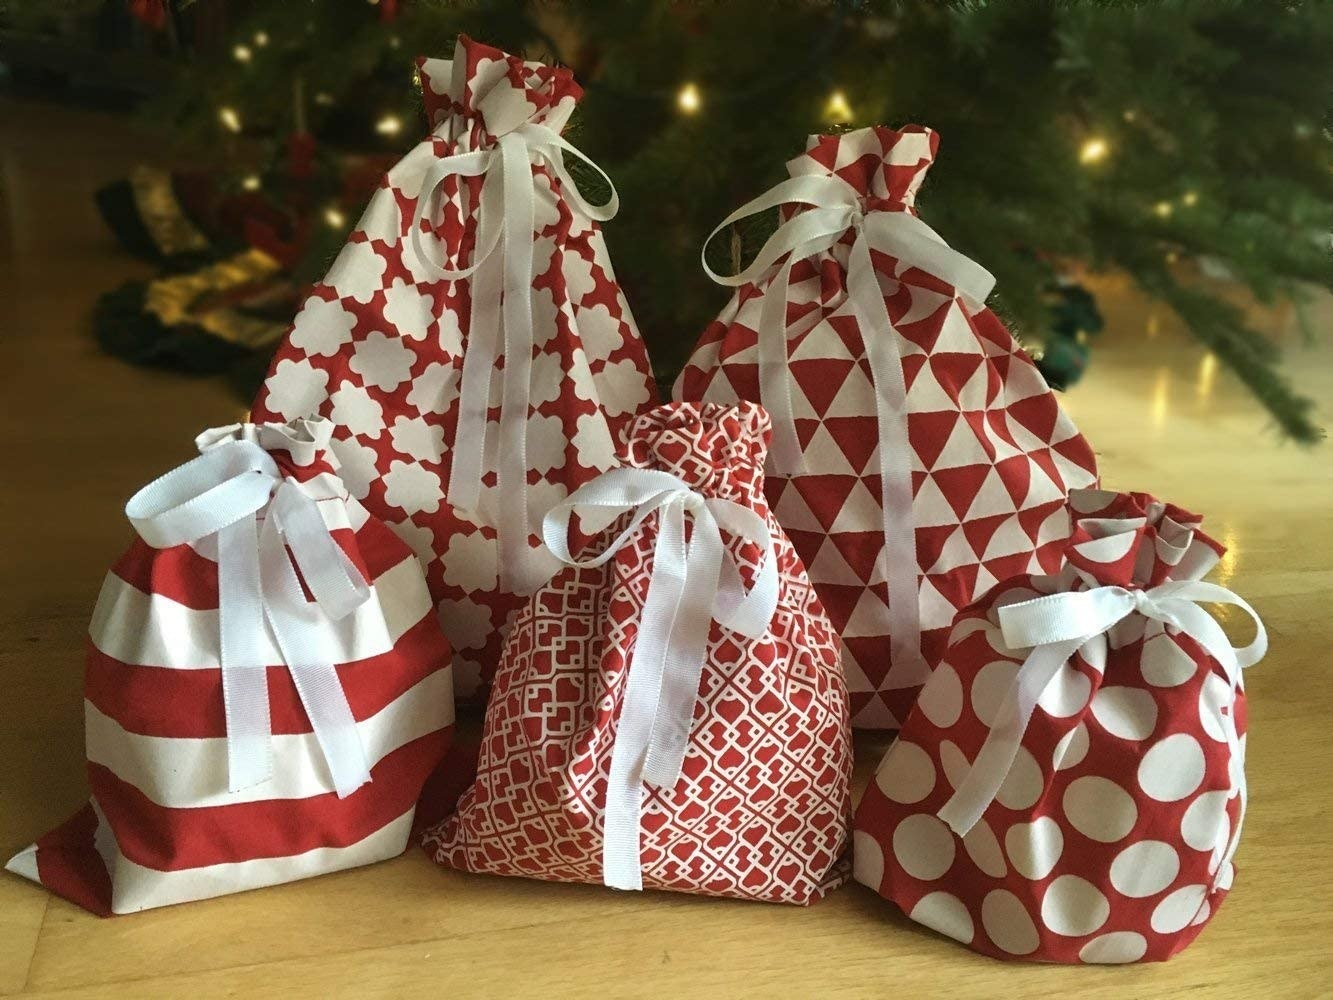 five gift sacks of various red and white patterns